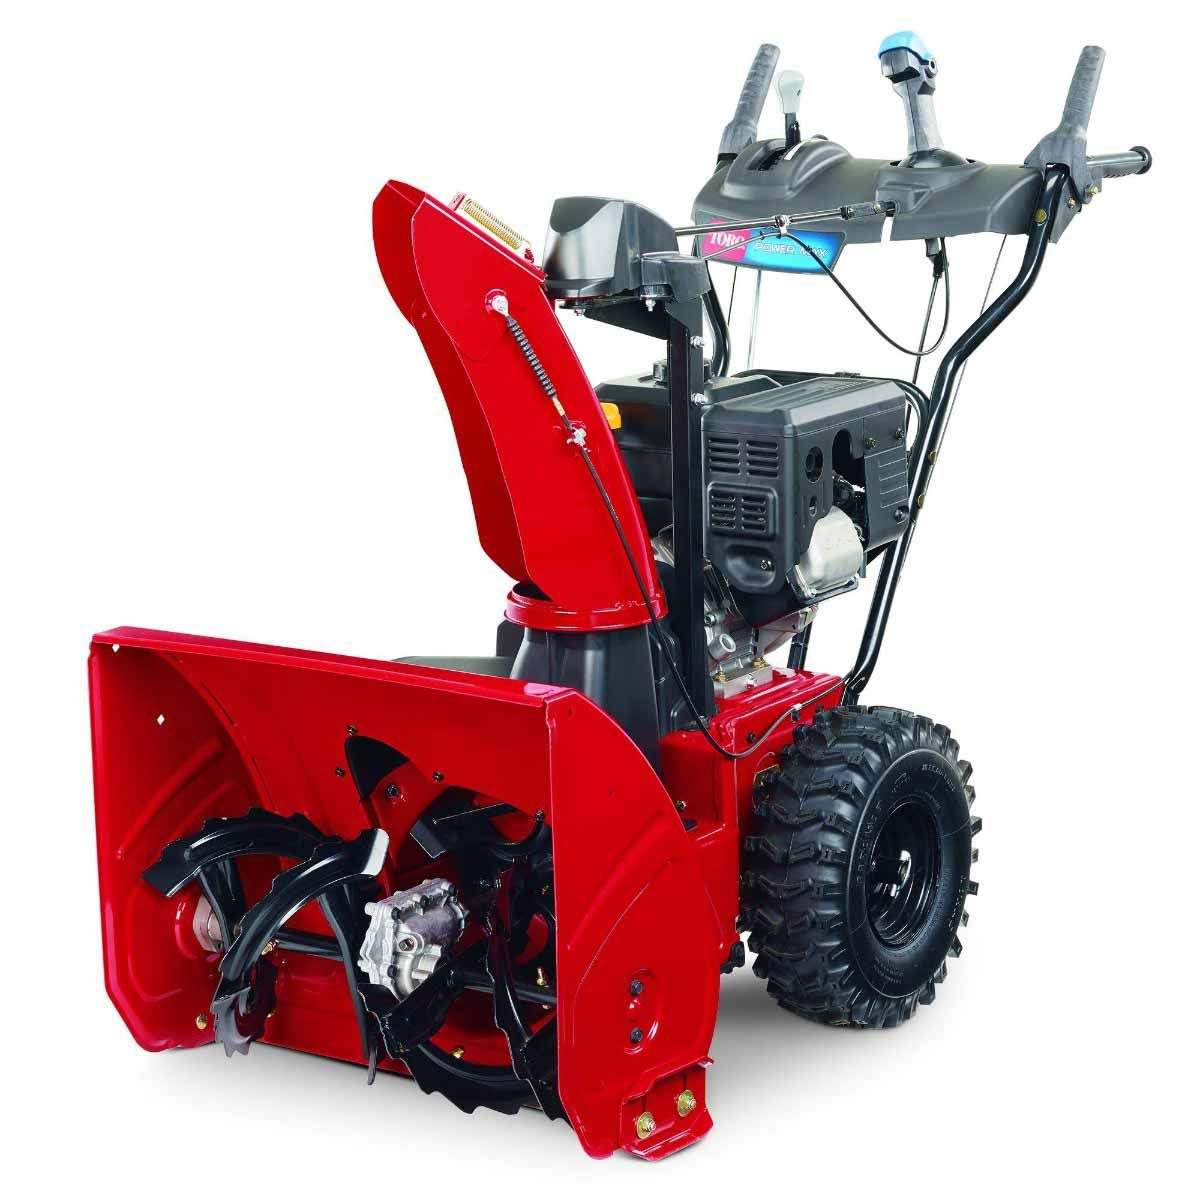 Toro 37798 Power Max 824 OE Two-Stage Electric Start Snowblower